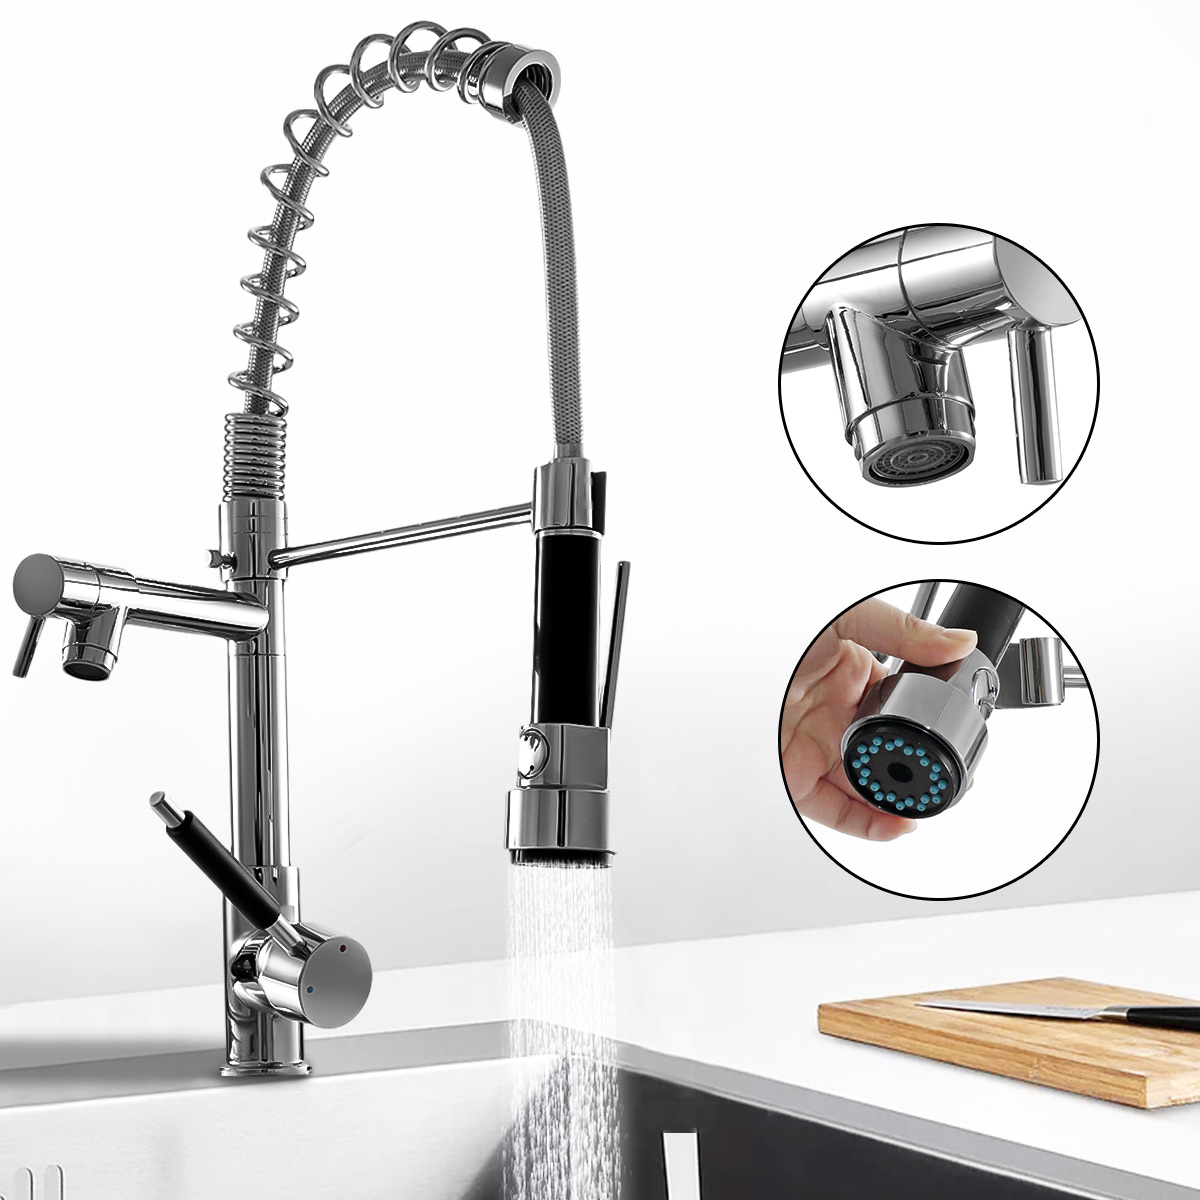 Kitchen Chrome Pull Out Side Spring Faucet Dual Spout Sprayer Single Handle Mixer Tap Sink Faucet 360 Rotation Deck Mounted